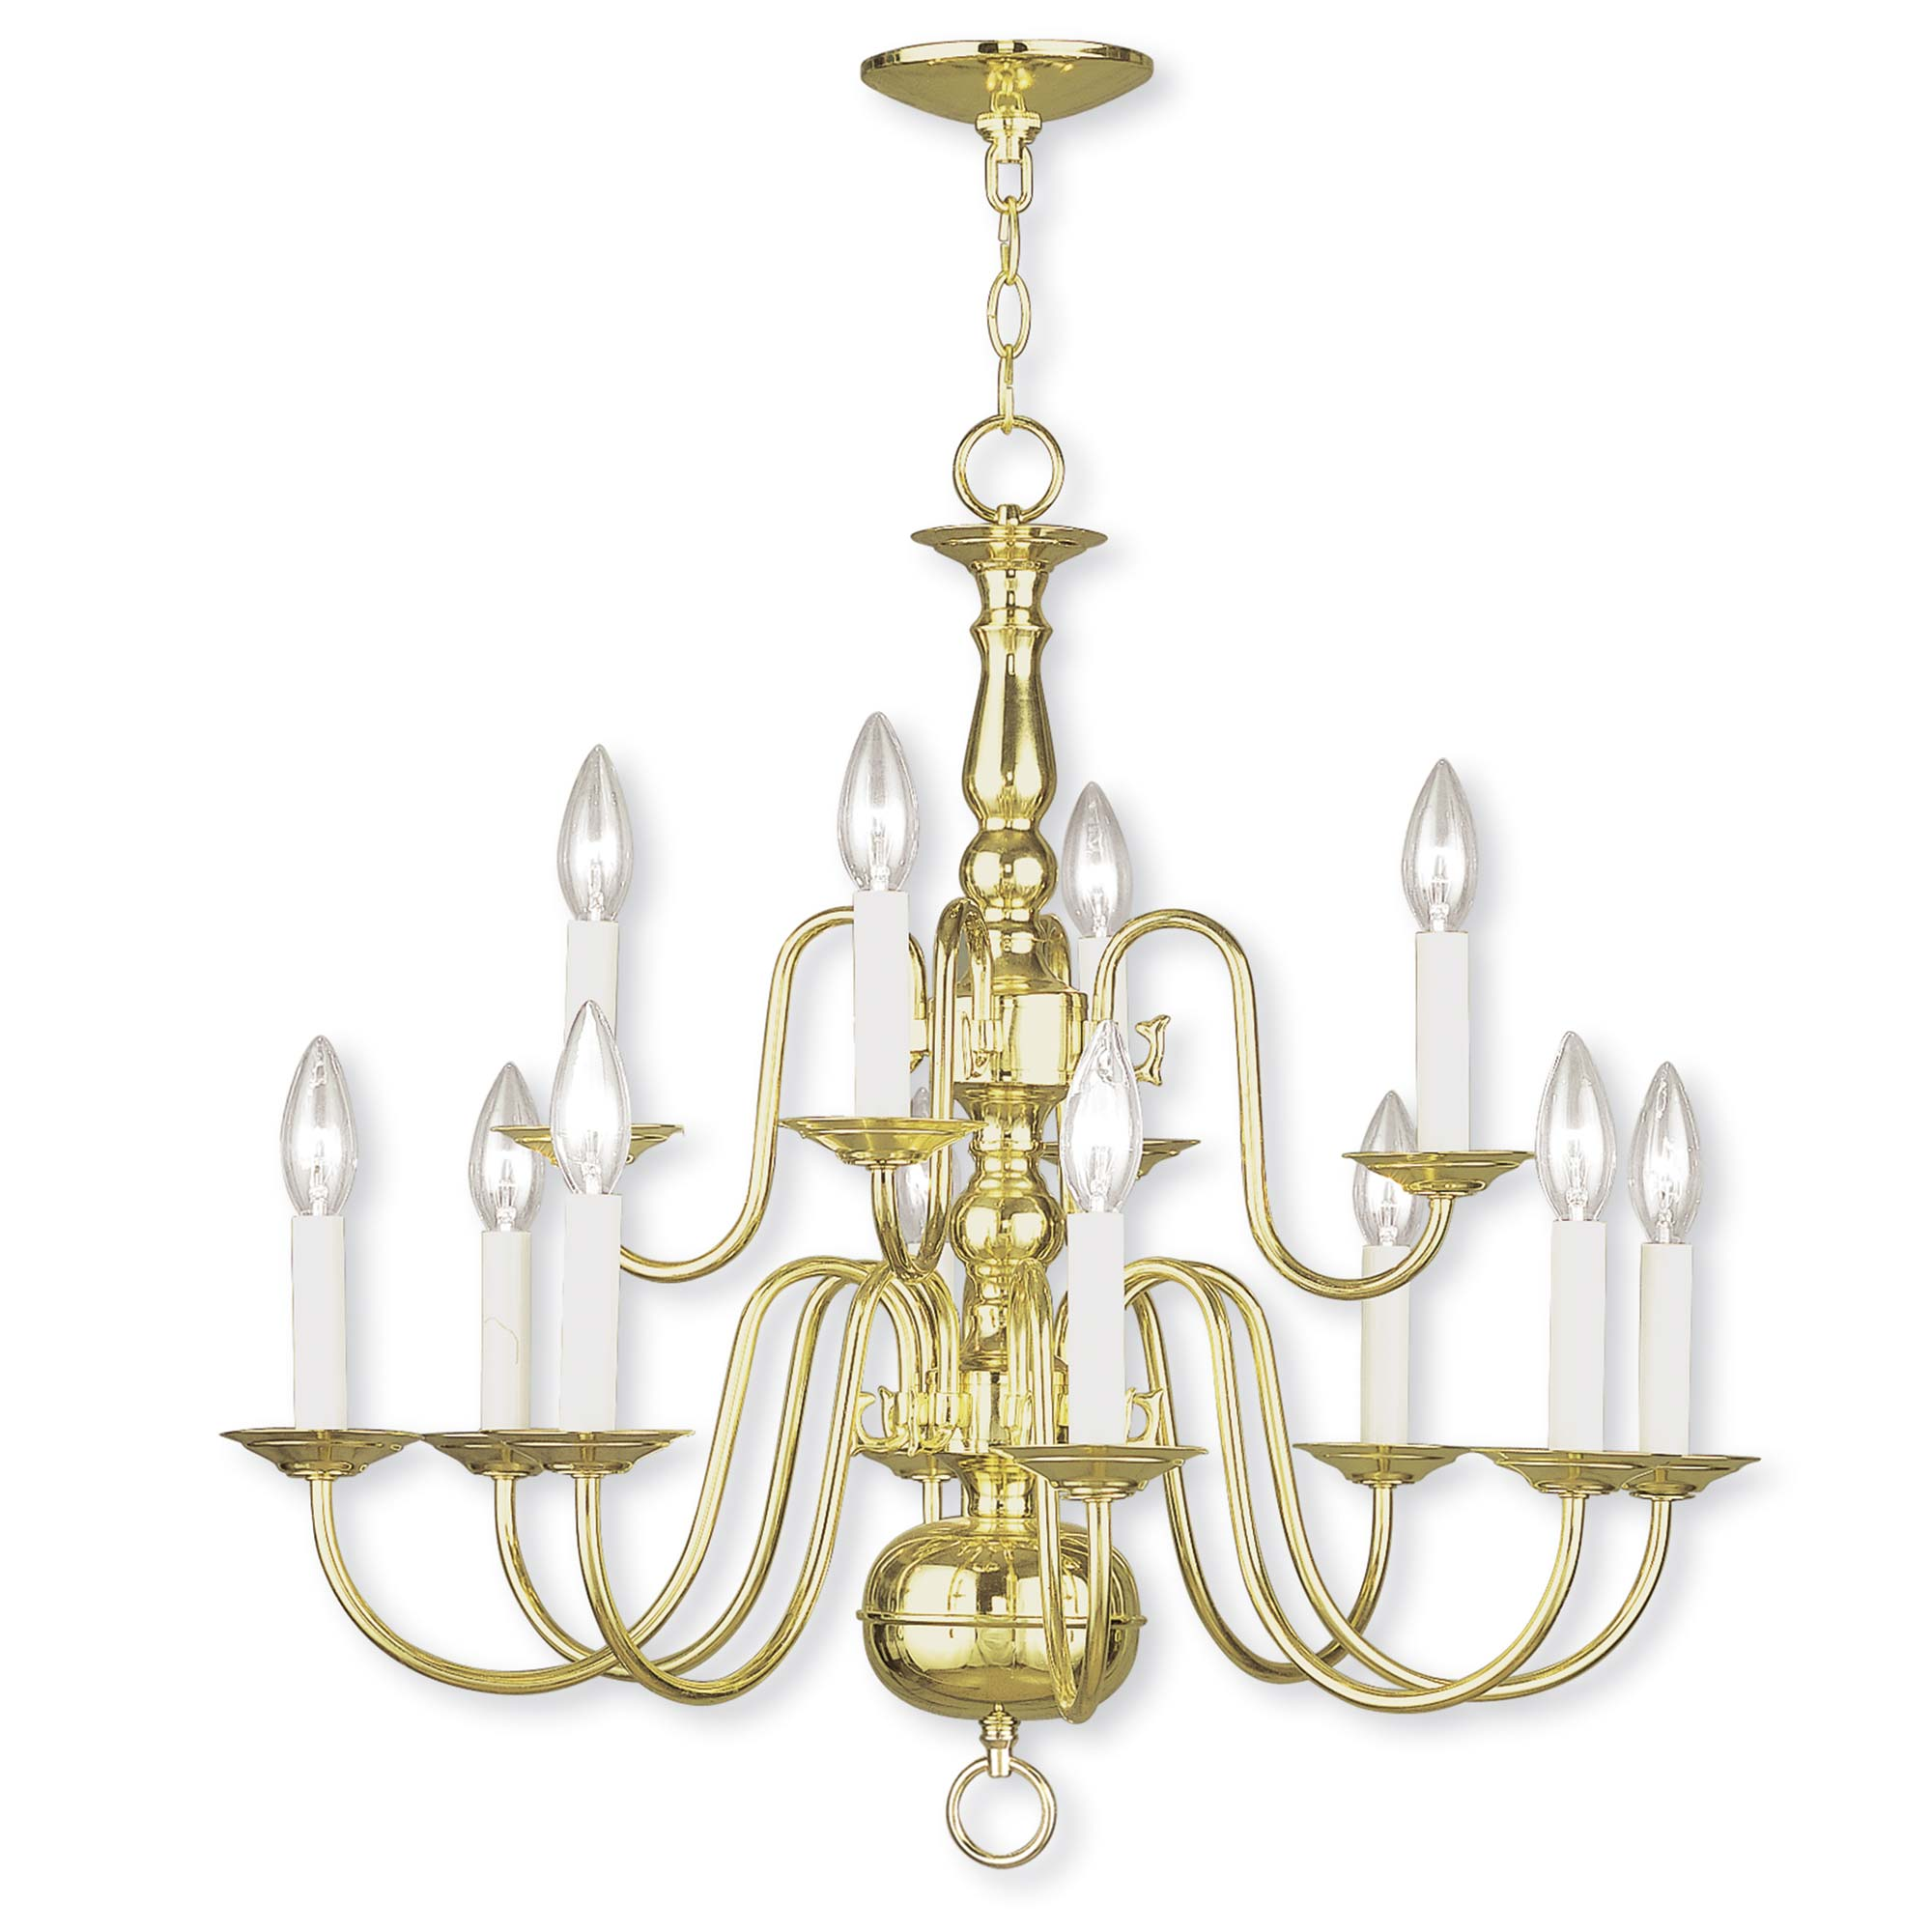 Williamsburg chandelier by livex lighting liv 5012 02 williamsburg chandelier by livex lighting aloadofball Image collections